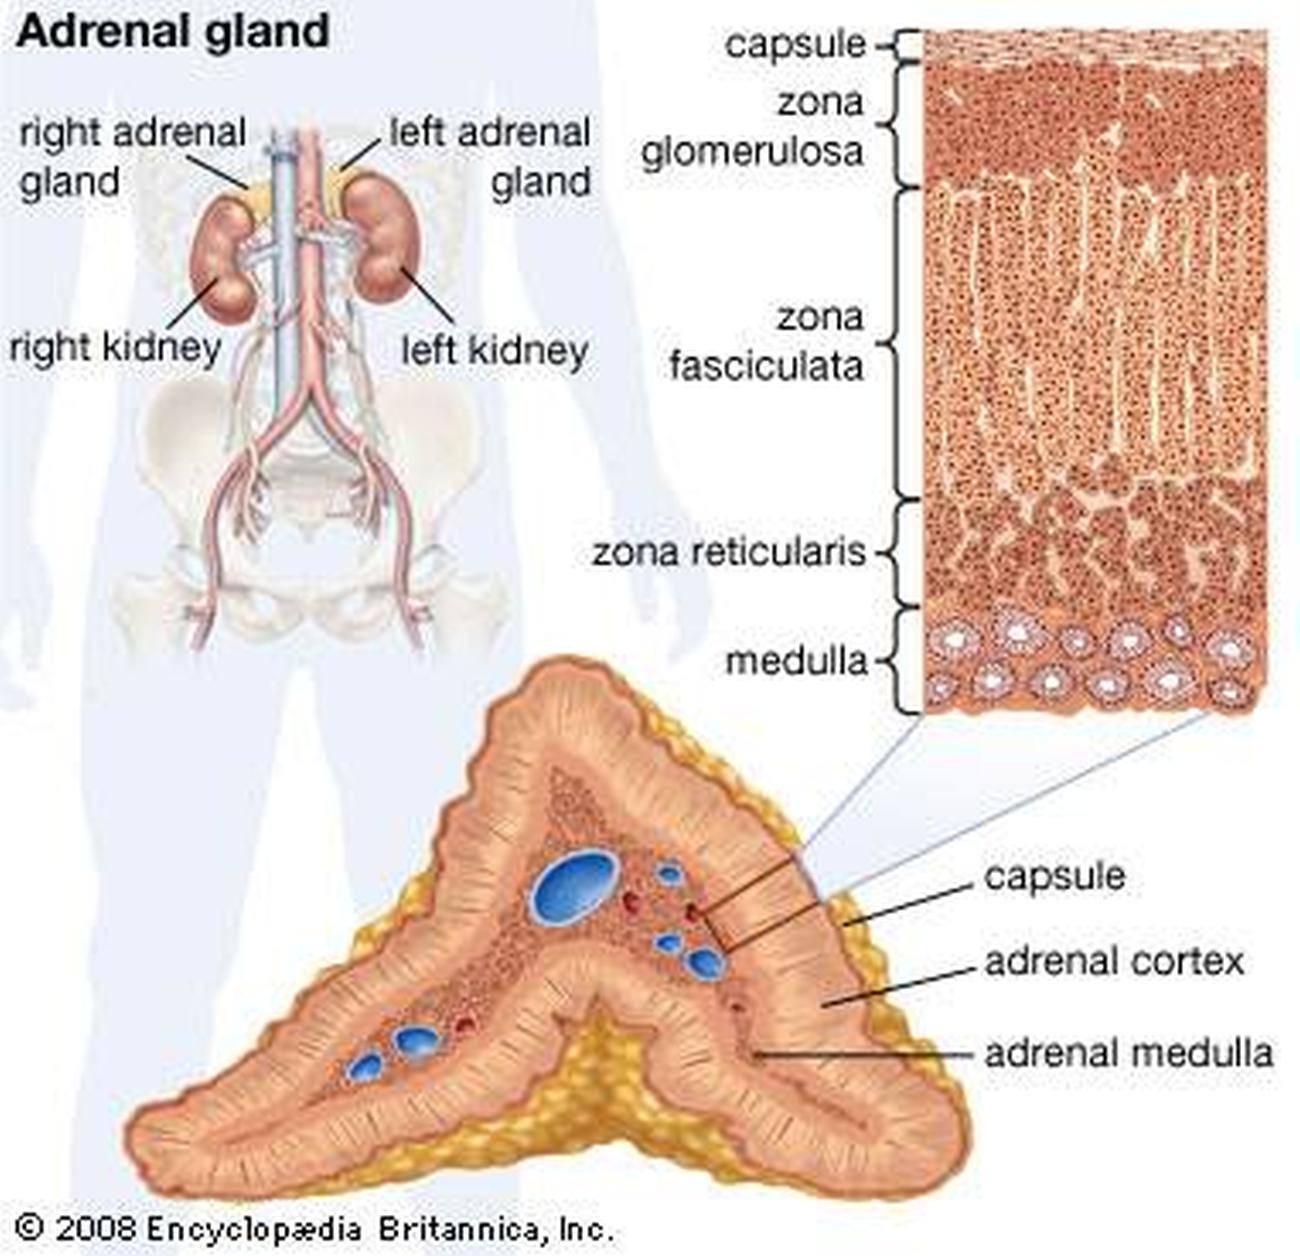 Adrenal cortical